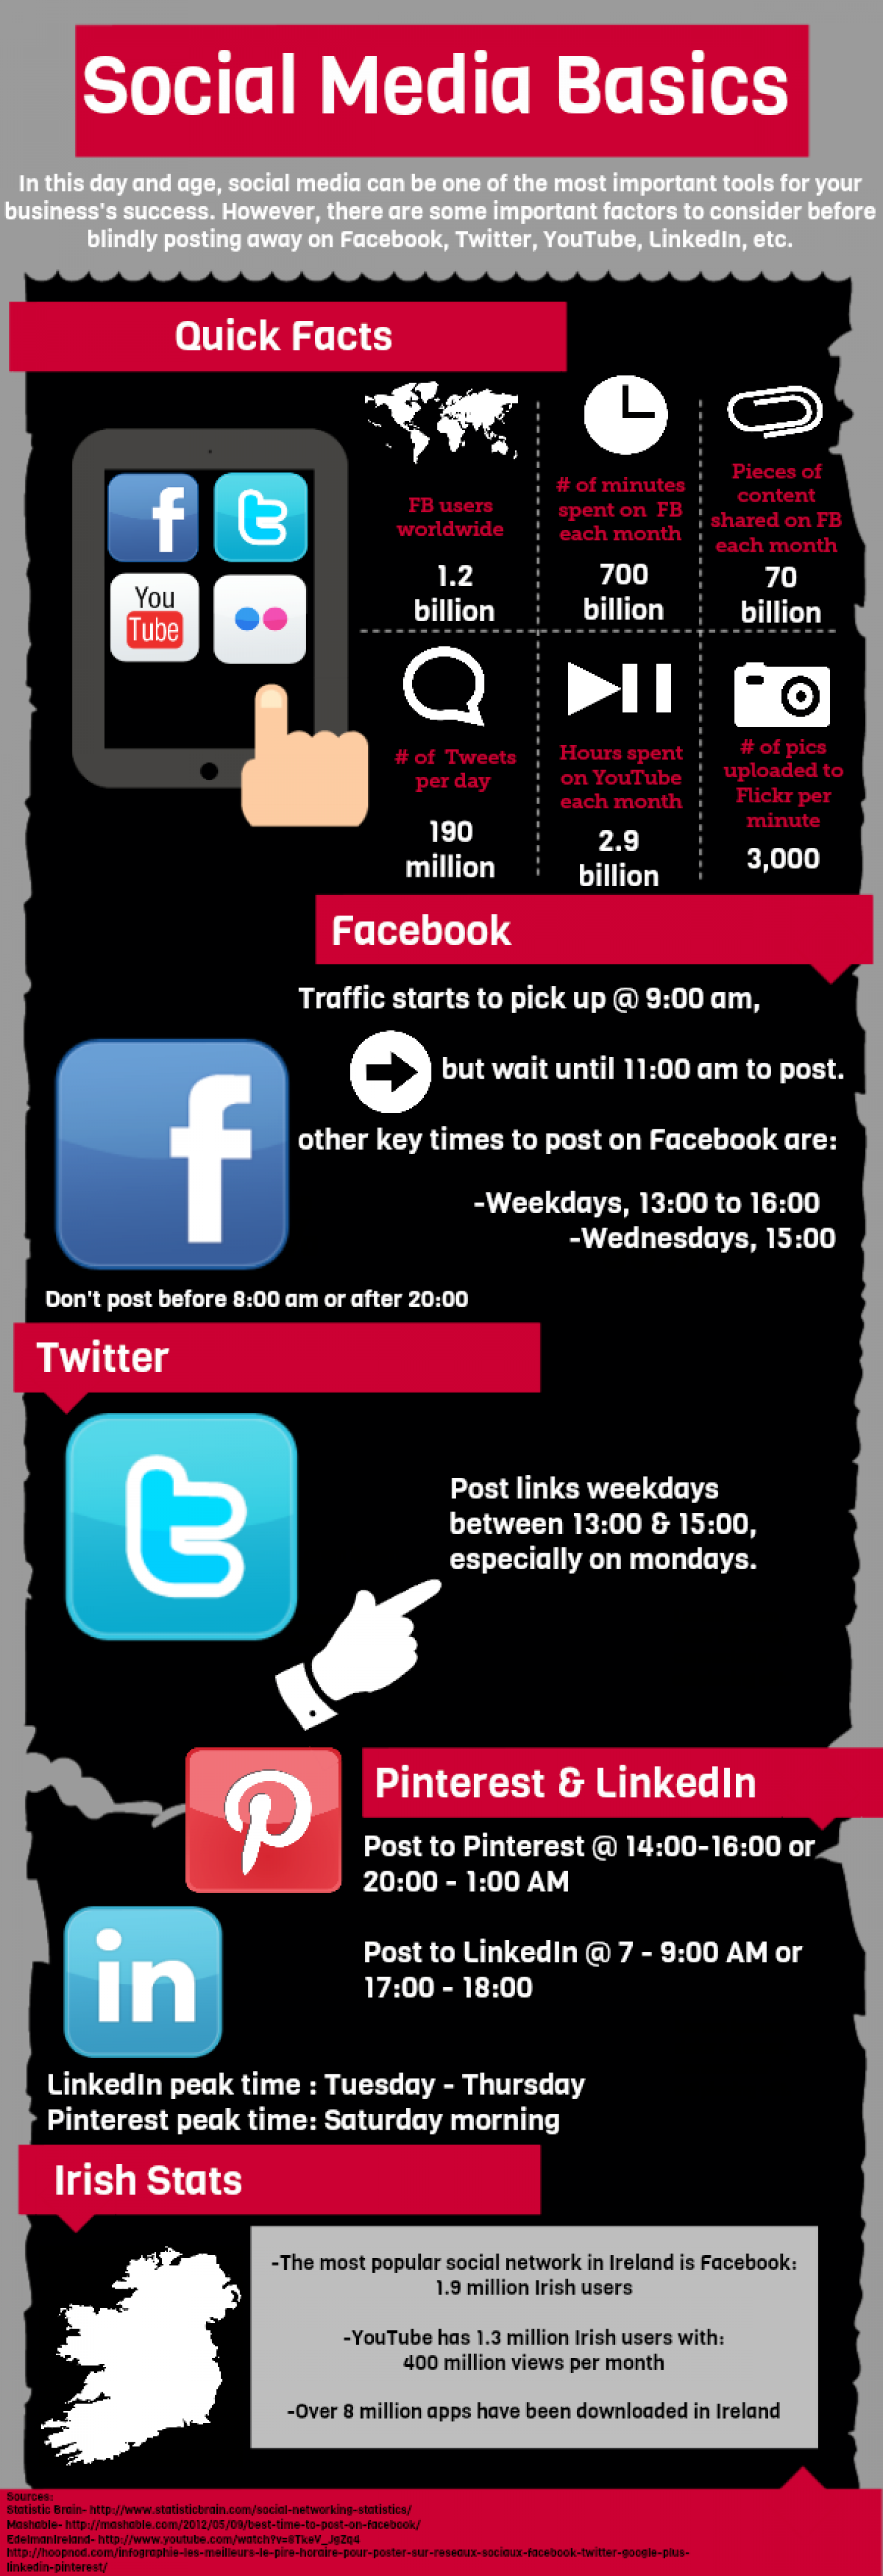 Oneproductions Social Media basics Infographic